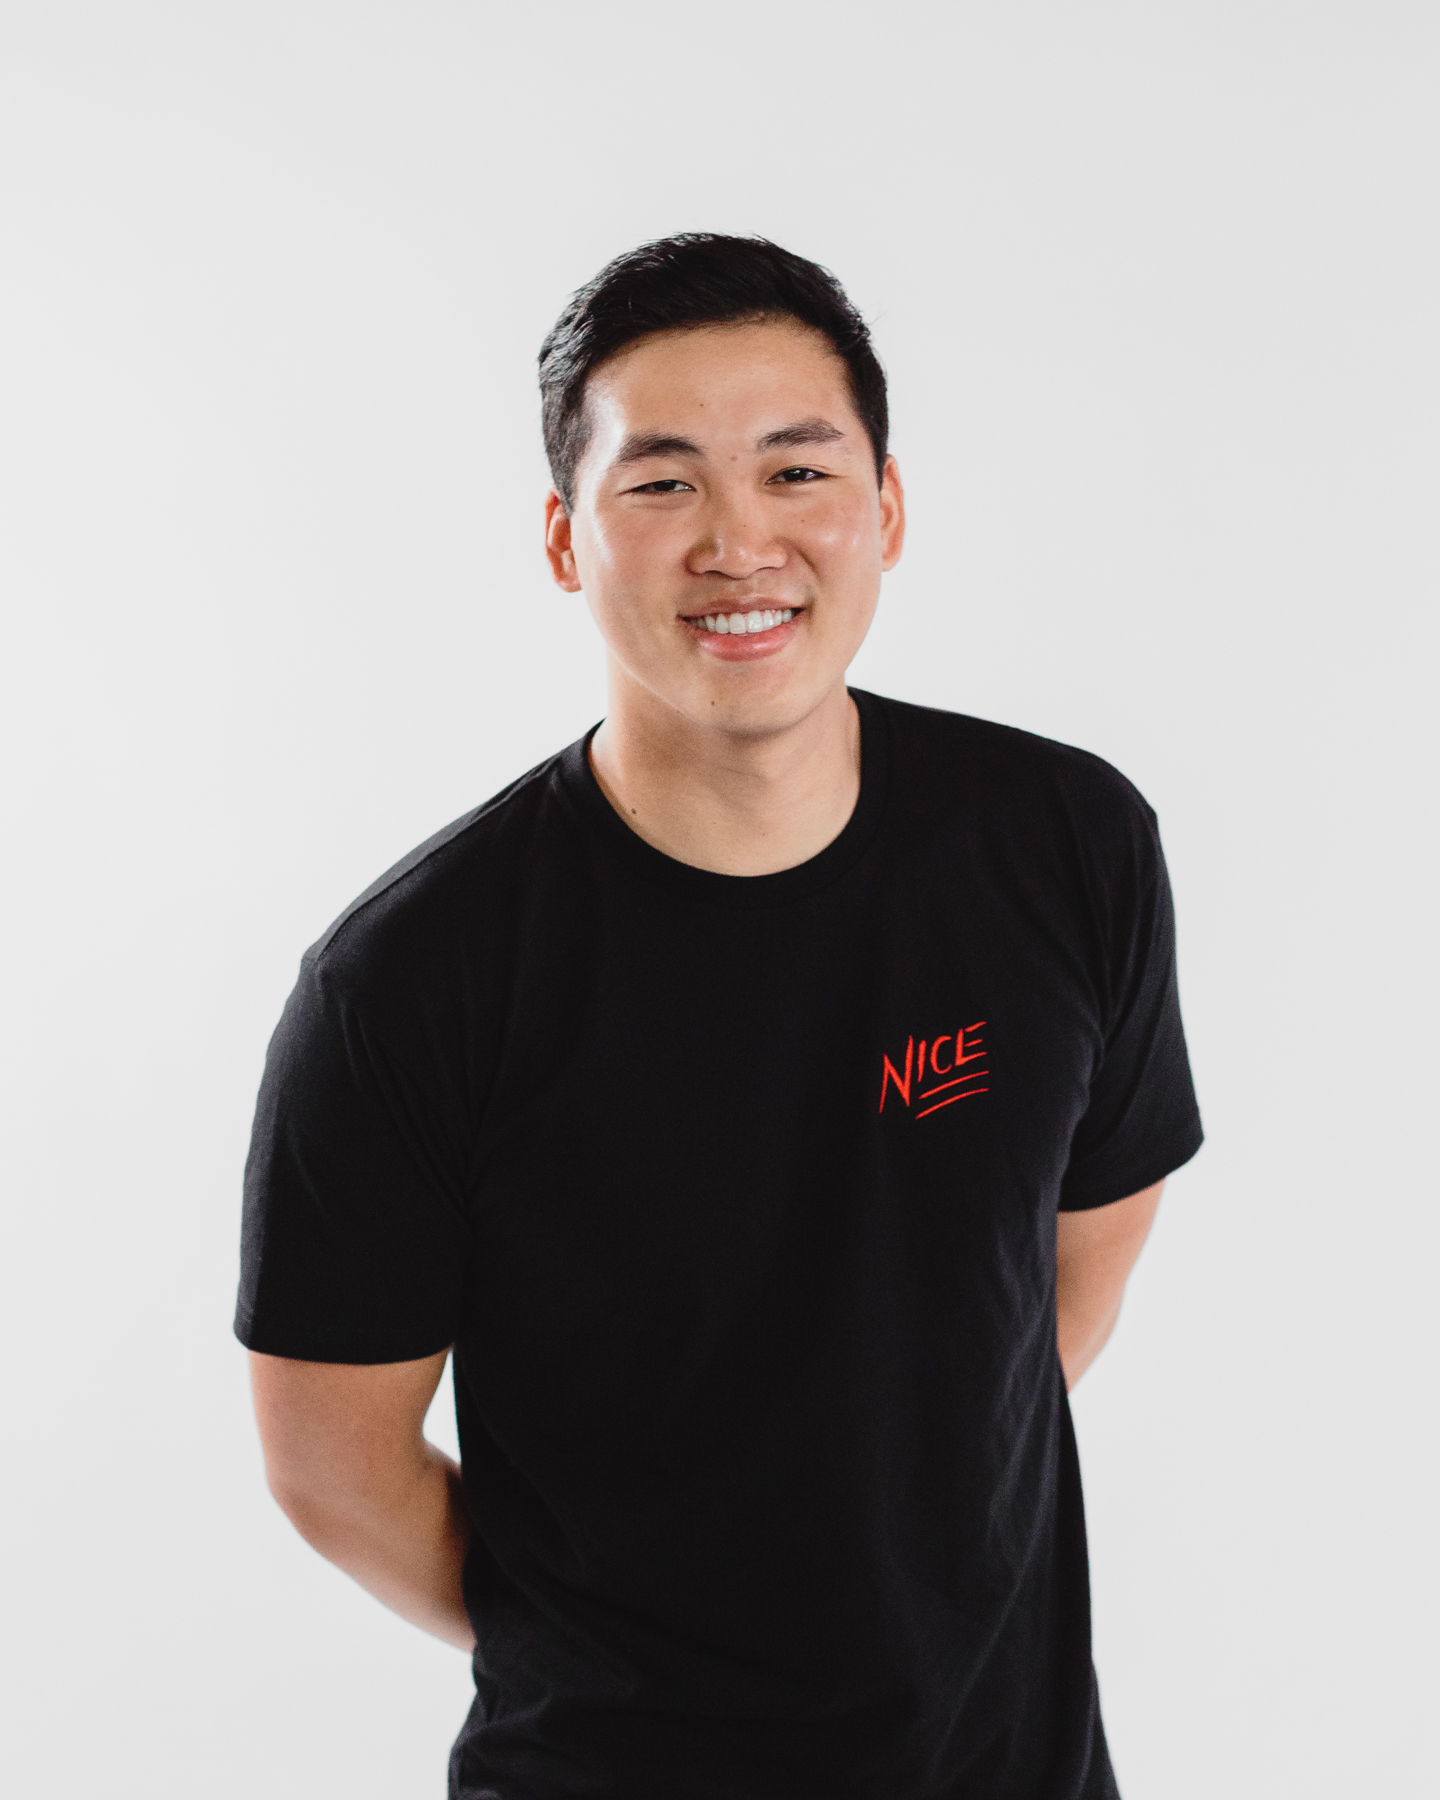 BENSON QUACH - is a filmmaker based in Los Angeles, CA specializing in Assistant Directing and Producing for independent films, commercials, and online content. Benson left his hometown of San Diego, CA in 2010 to attend the California State University of Northridge. He completed his studies in 2014 with a Bachelor of Arts in Film Production emphasizing on Editing and Production Management.Benson's wide array of experience spans across feature films, television series, short films, commercials, and music videos. Currently, Benson is the in-house Assistant Director and Producer for the popular YouTube-based production company Wong Fu Productions.Click HERE to view my IMDb page(*headshot provided by Joyce Chen)